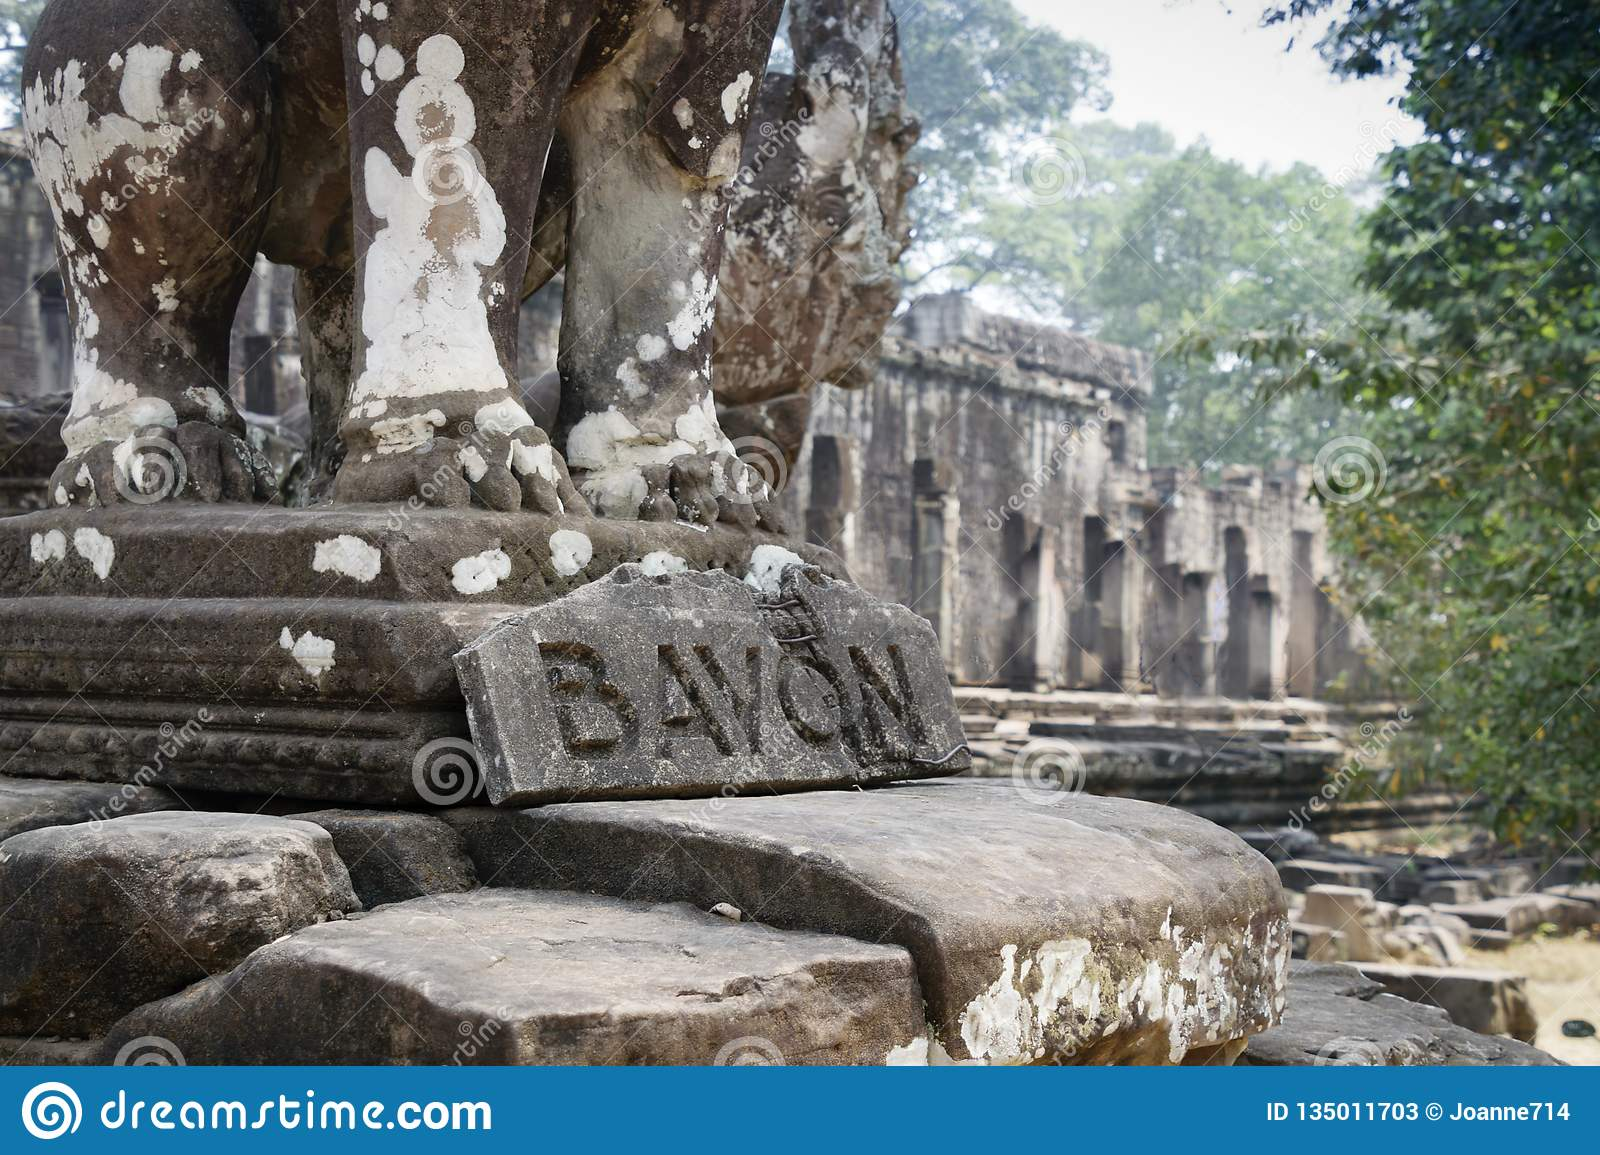 Bayon is remarkable for the 216 serene and smiling stone faces on the many towers jutting out from the high terrace and cluster